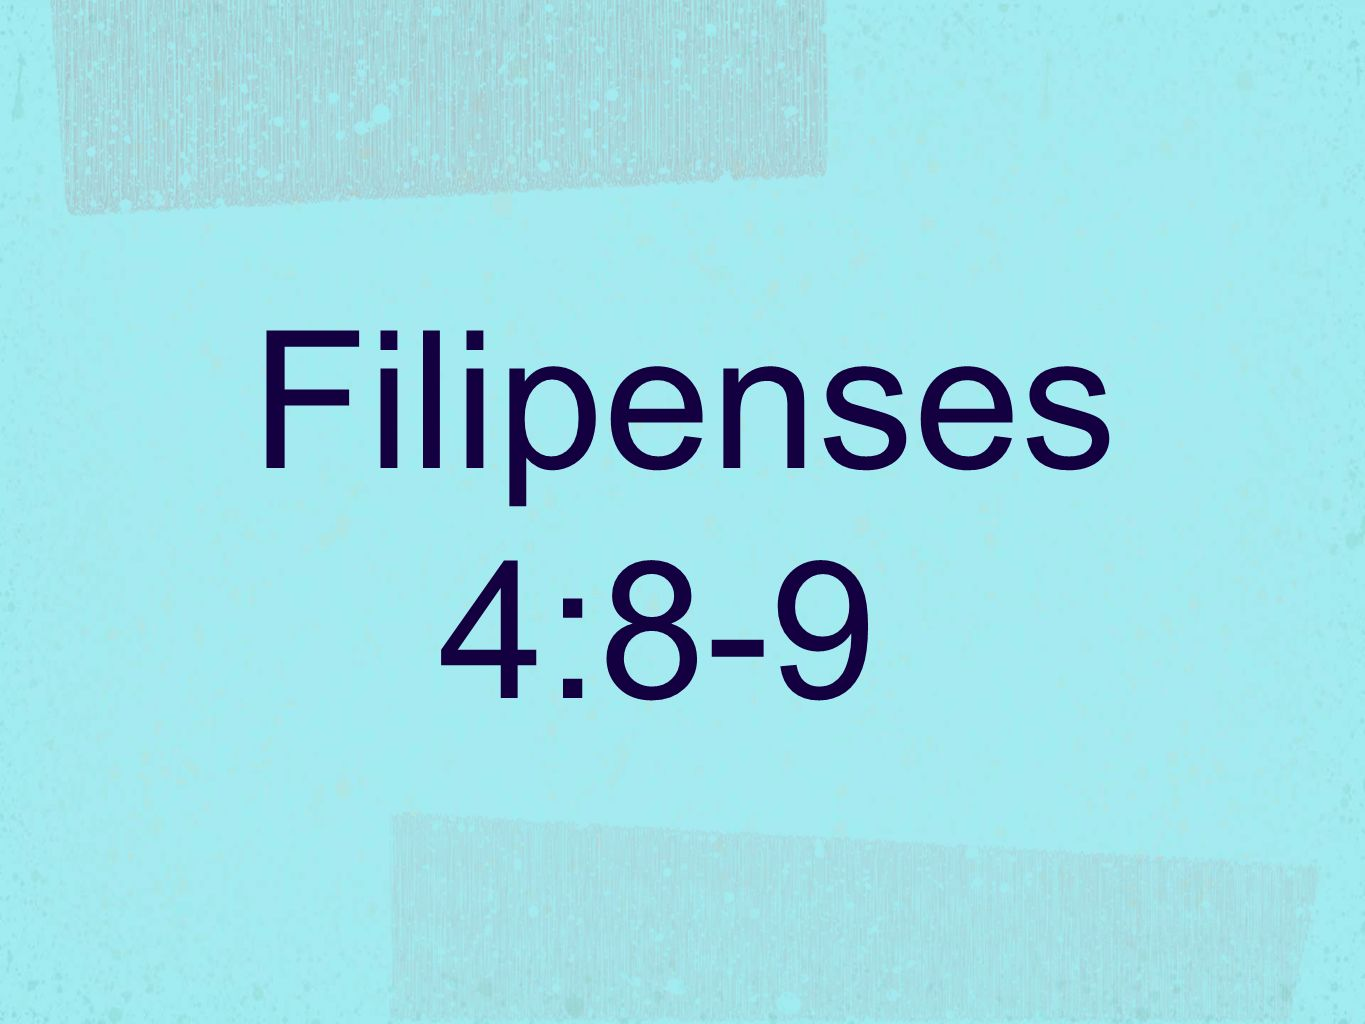 Filipenses 4:8-9